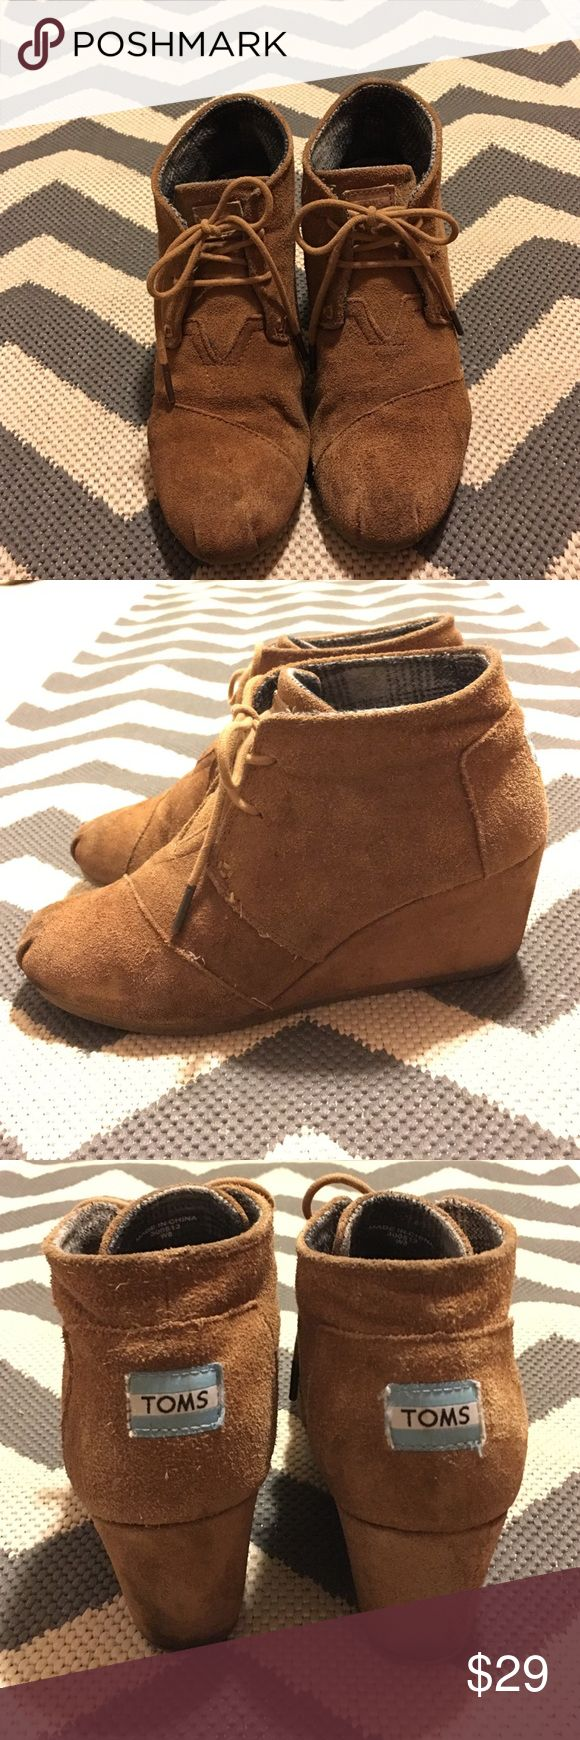 Toms Desert Wedge Tan Size 8 Worn and some staining around the bottom and toes. Super comfortable. Size 8. TOMS Shoes Ankle Boots & Booties